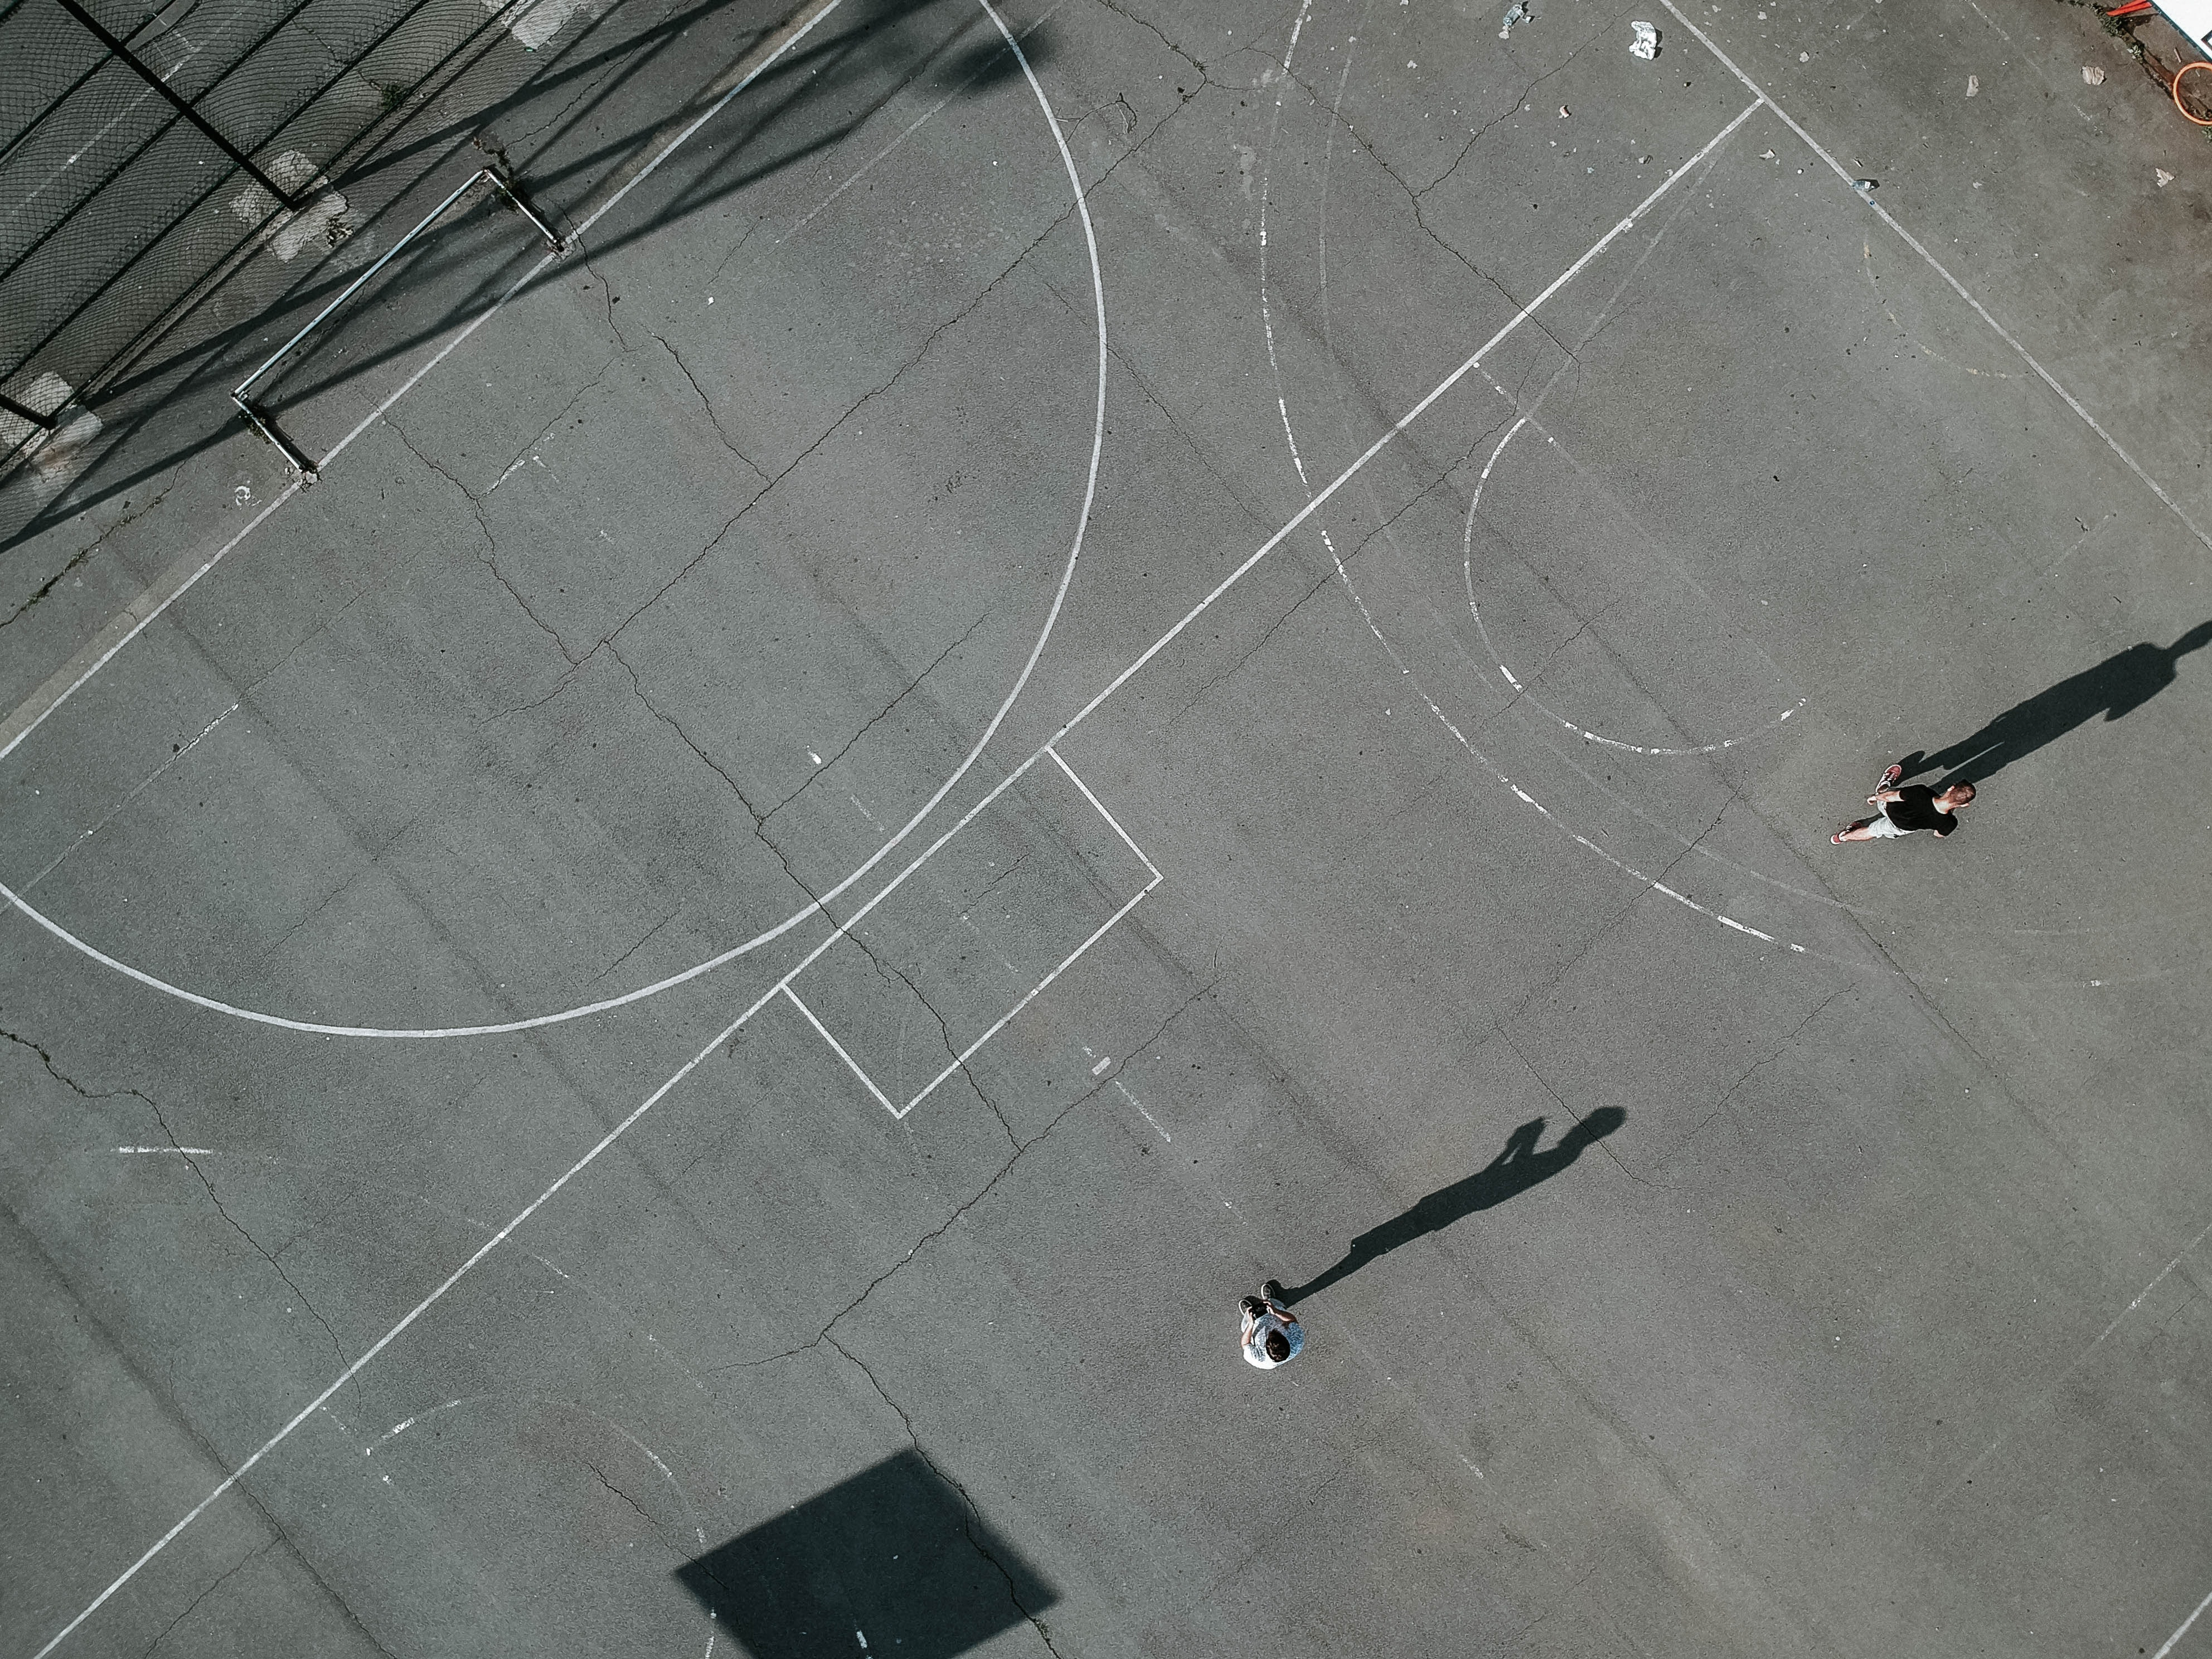 top-view-photo-of-people-playing-basketball-2538027.jpg